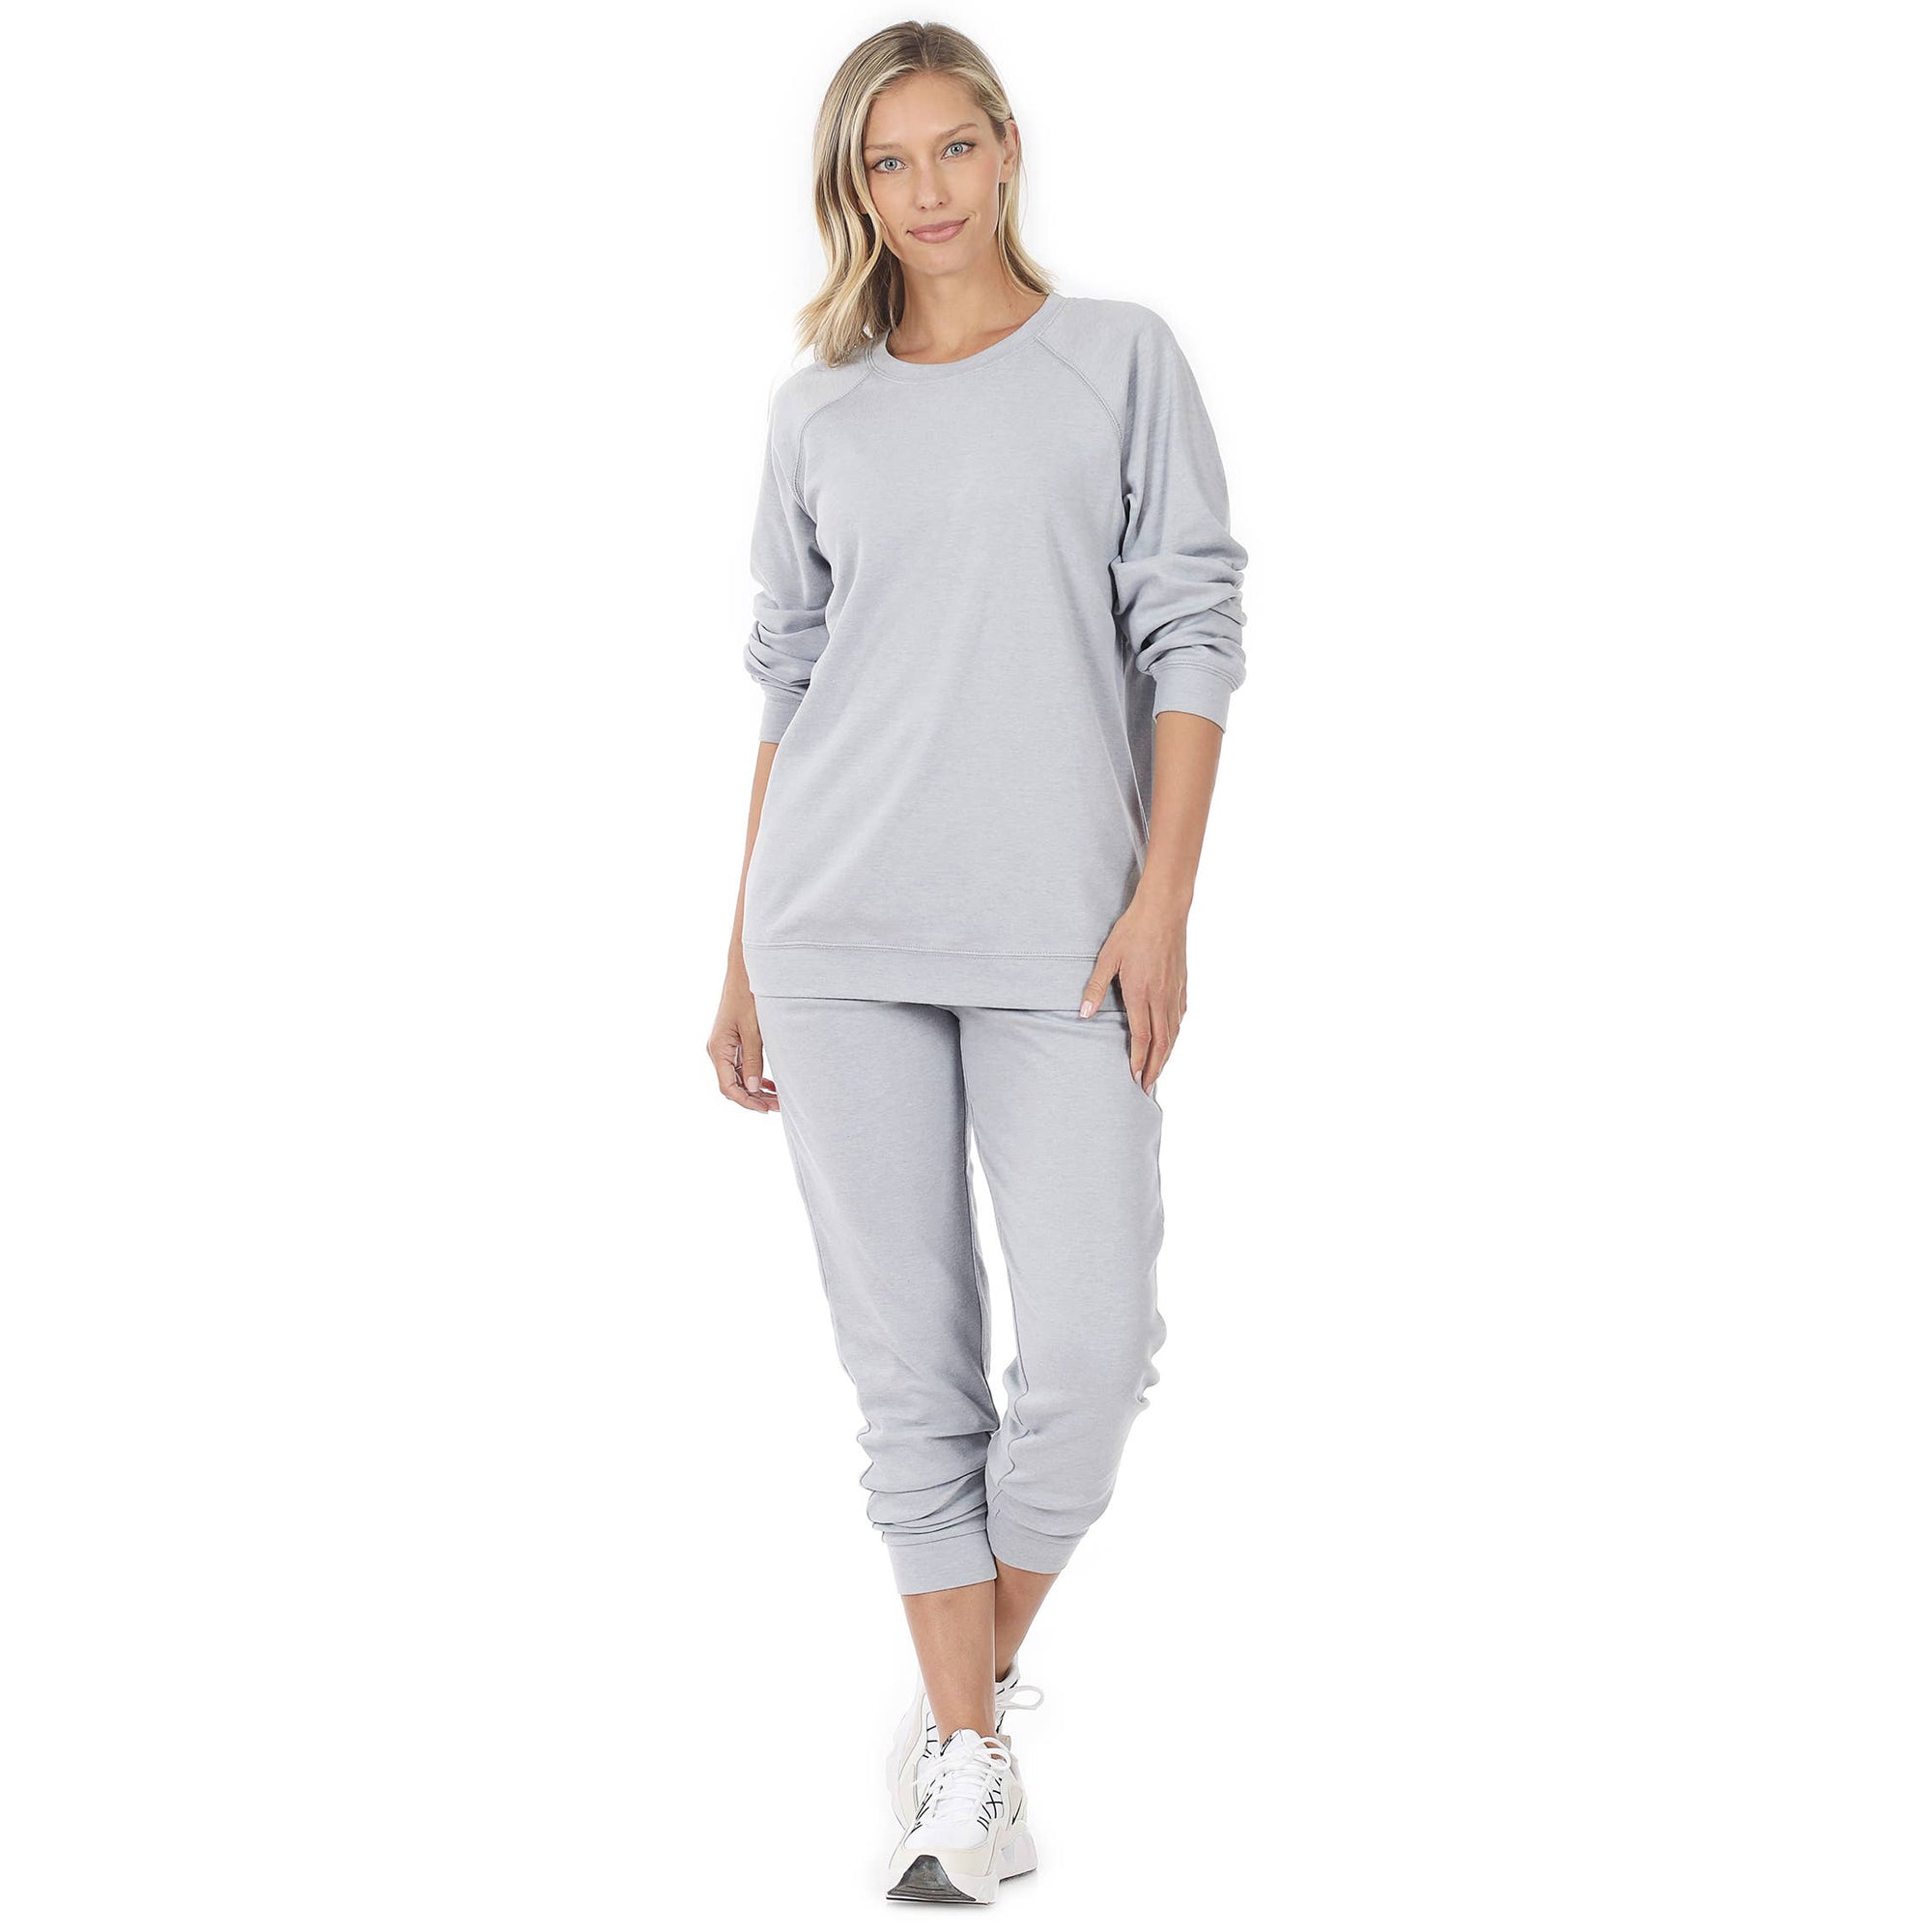 Women's Cotton Jogger Pants